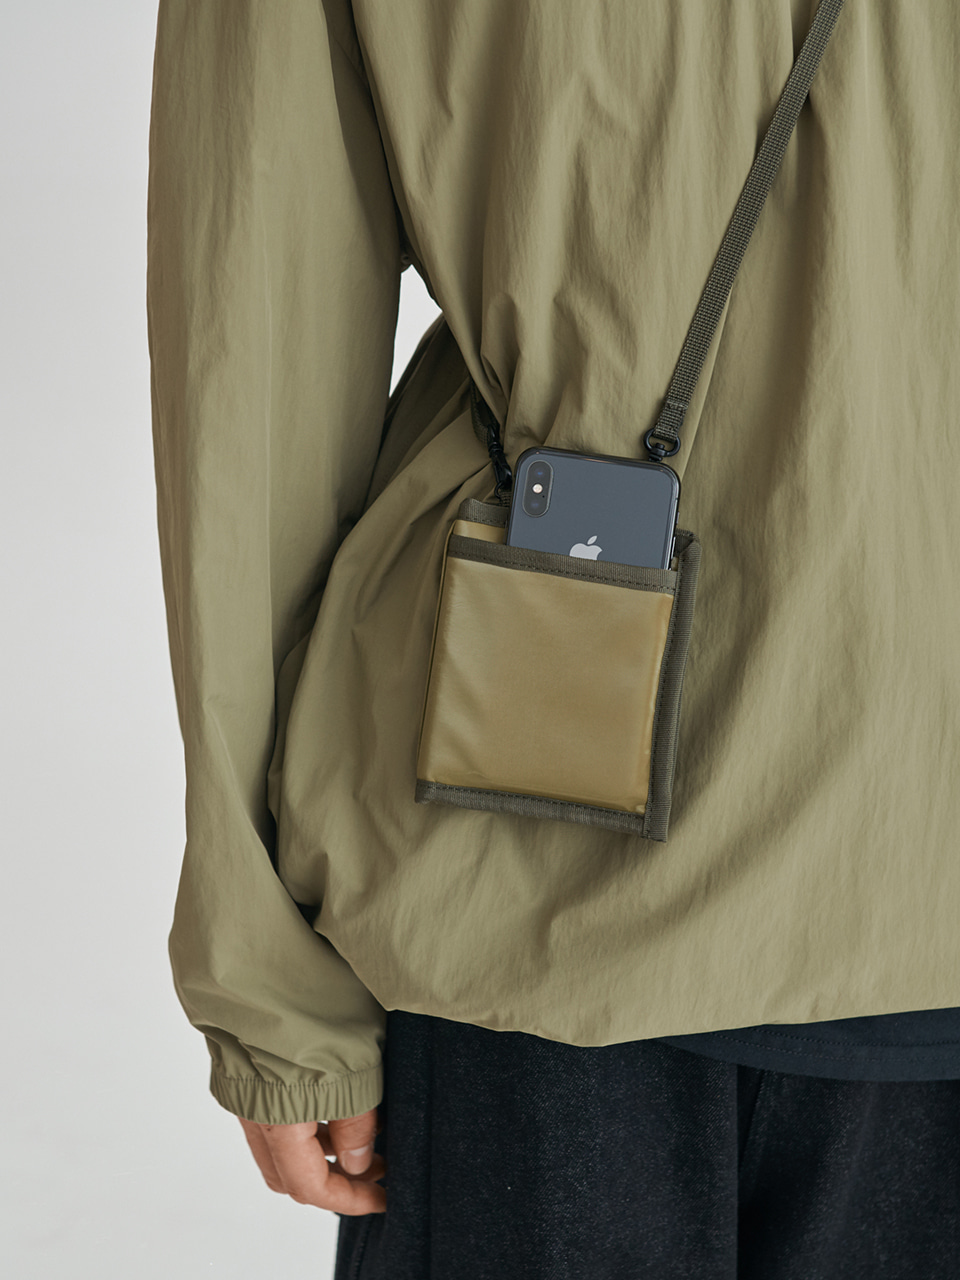 [FW20 Sounds Life] Wallet & Phone Cross Bag(Khaki) STEREO-SHOP